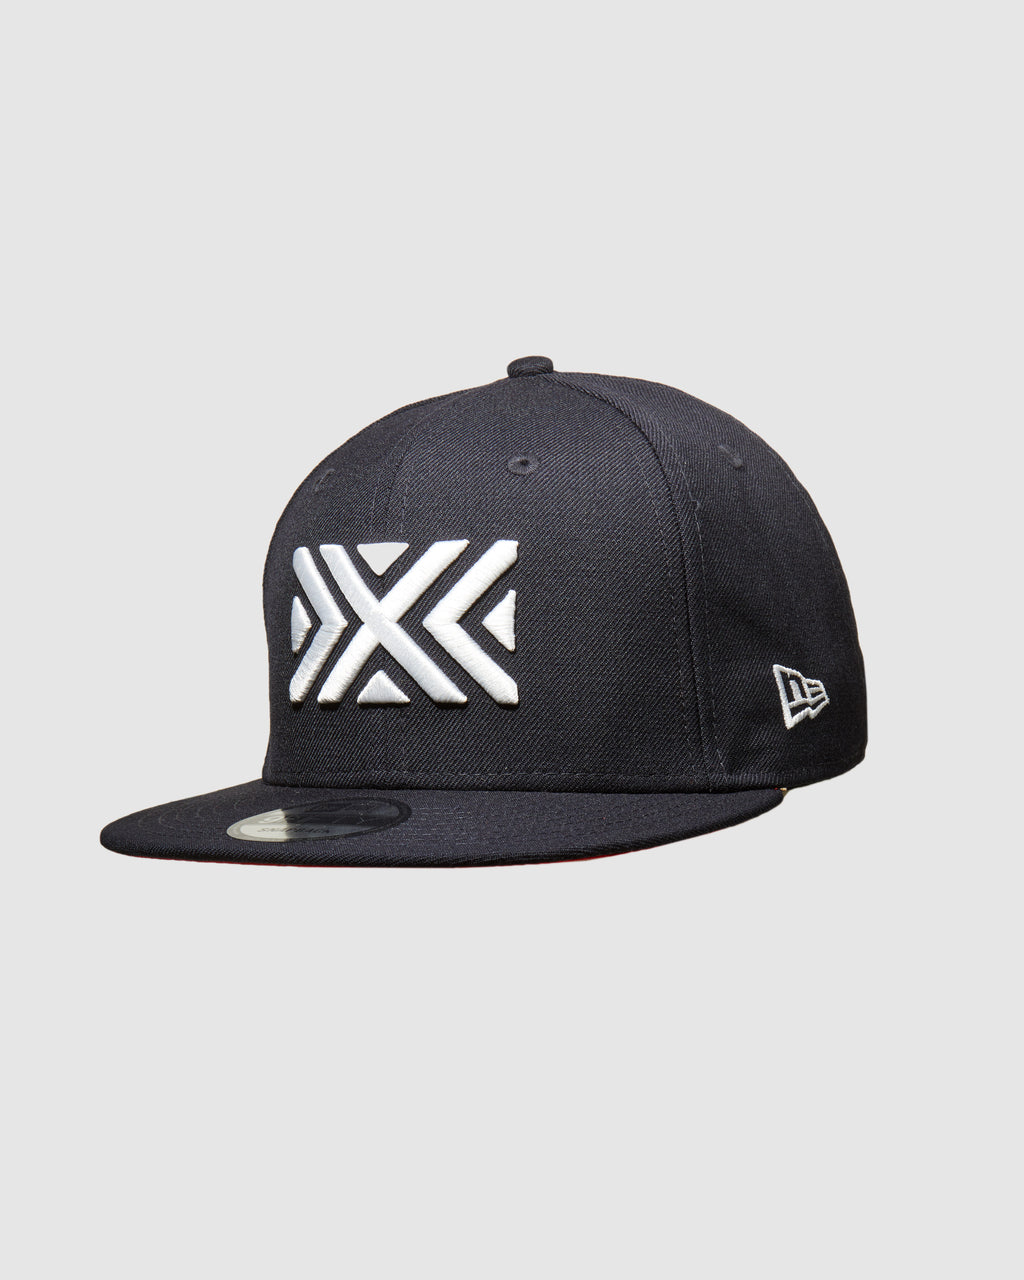 UNDEFEATED NYXL Team Hat (OSFM)